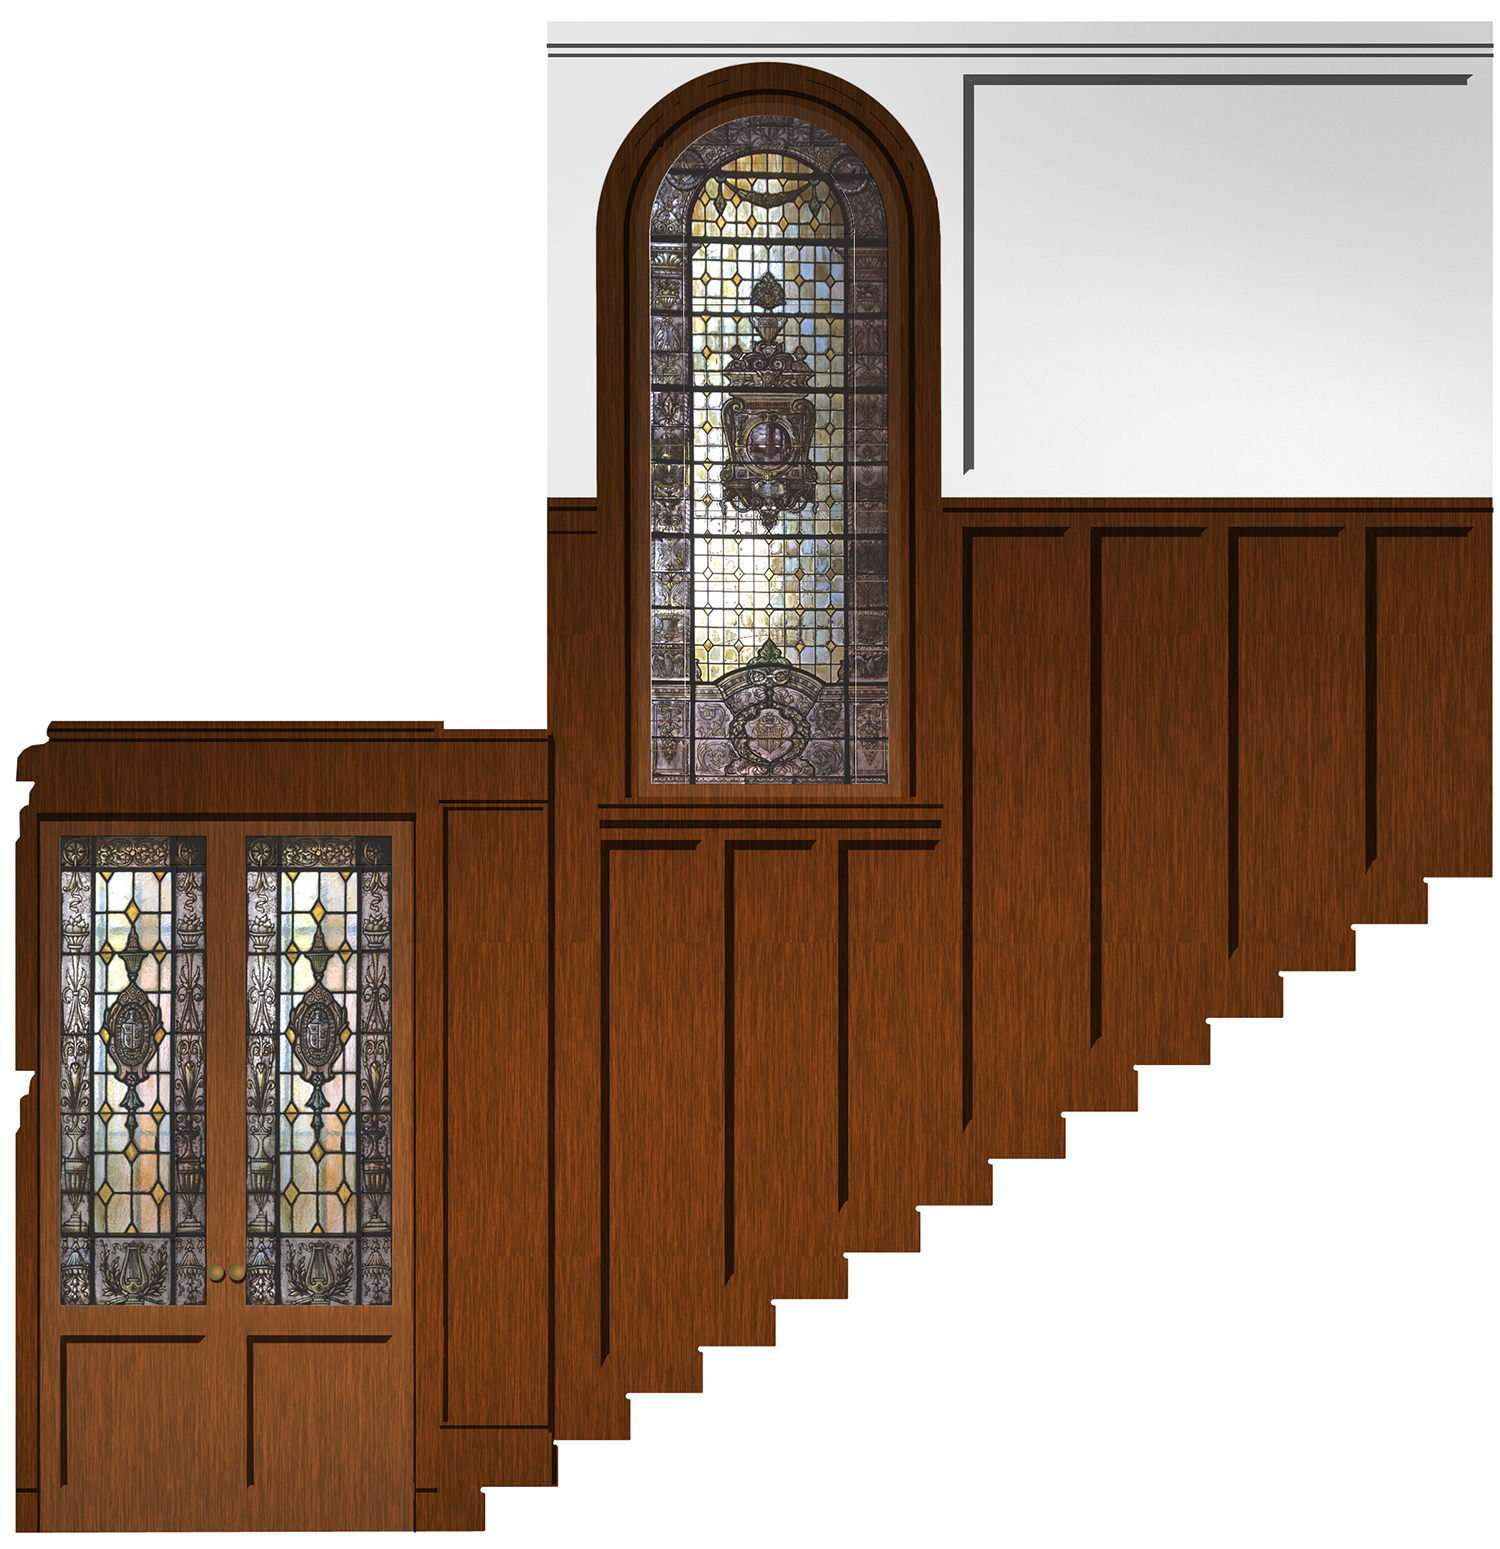 Rendering showing the stained glass windows repurposed on the interior at 105 8th Avenue.